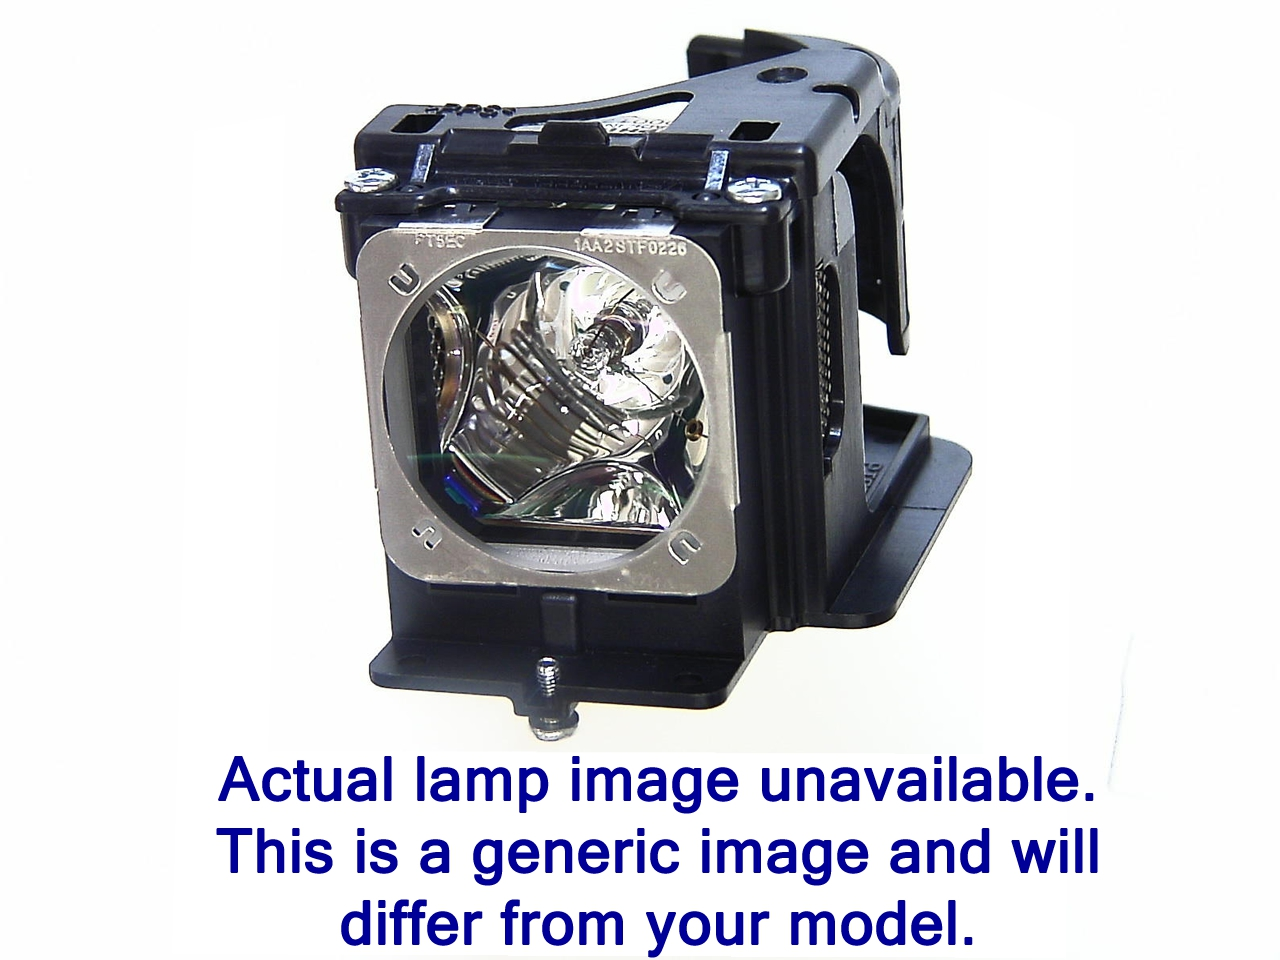 Smart Lamp for Serial Numbers 2101 a 2600 inclusive For EIKI LC-XB26 (XB2501 Lamp) Proyector.